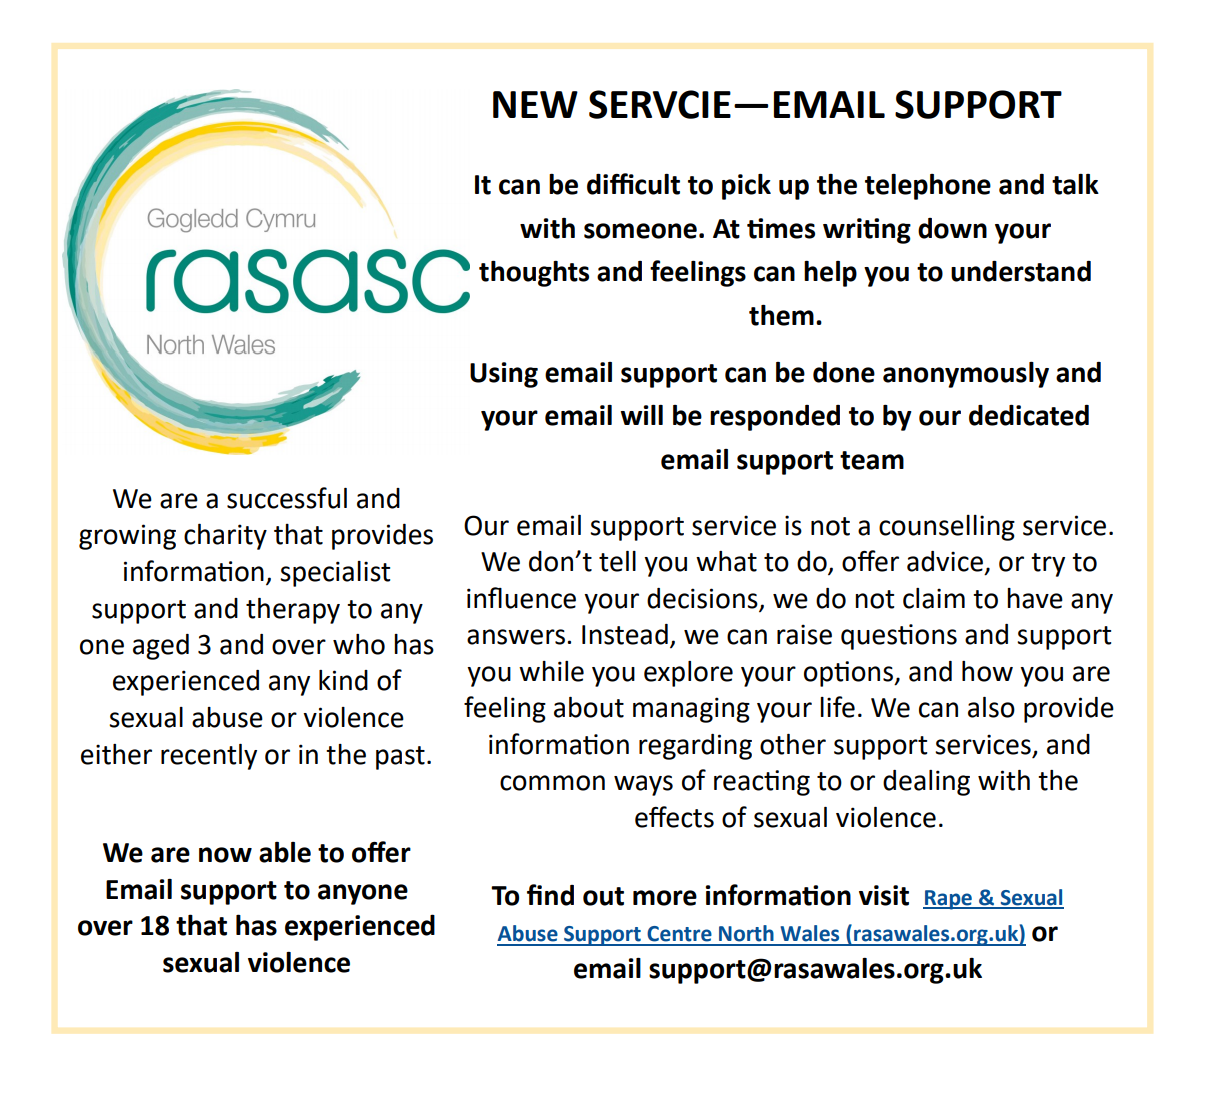 RASASC NW Email Support